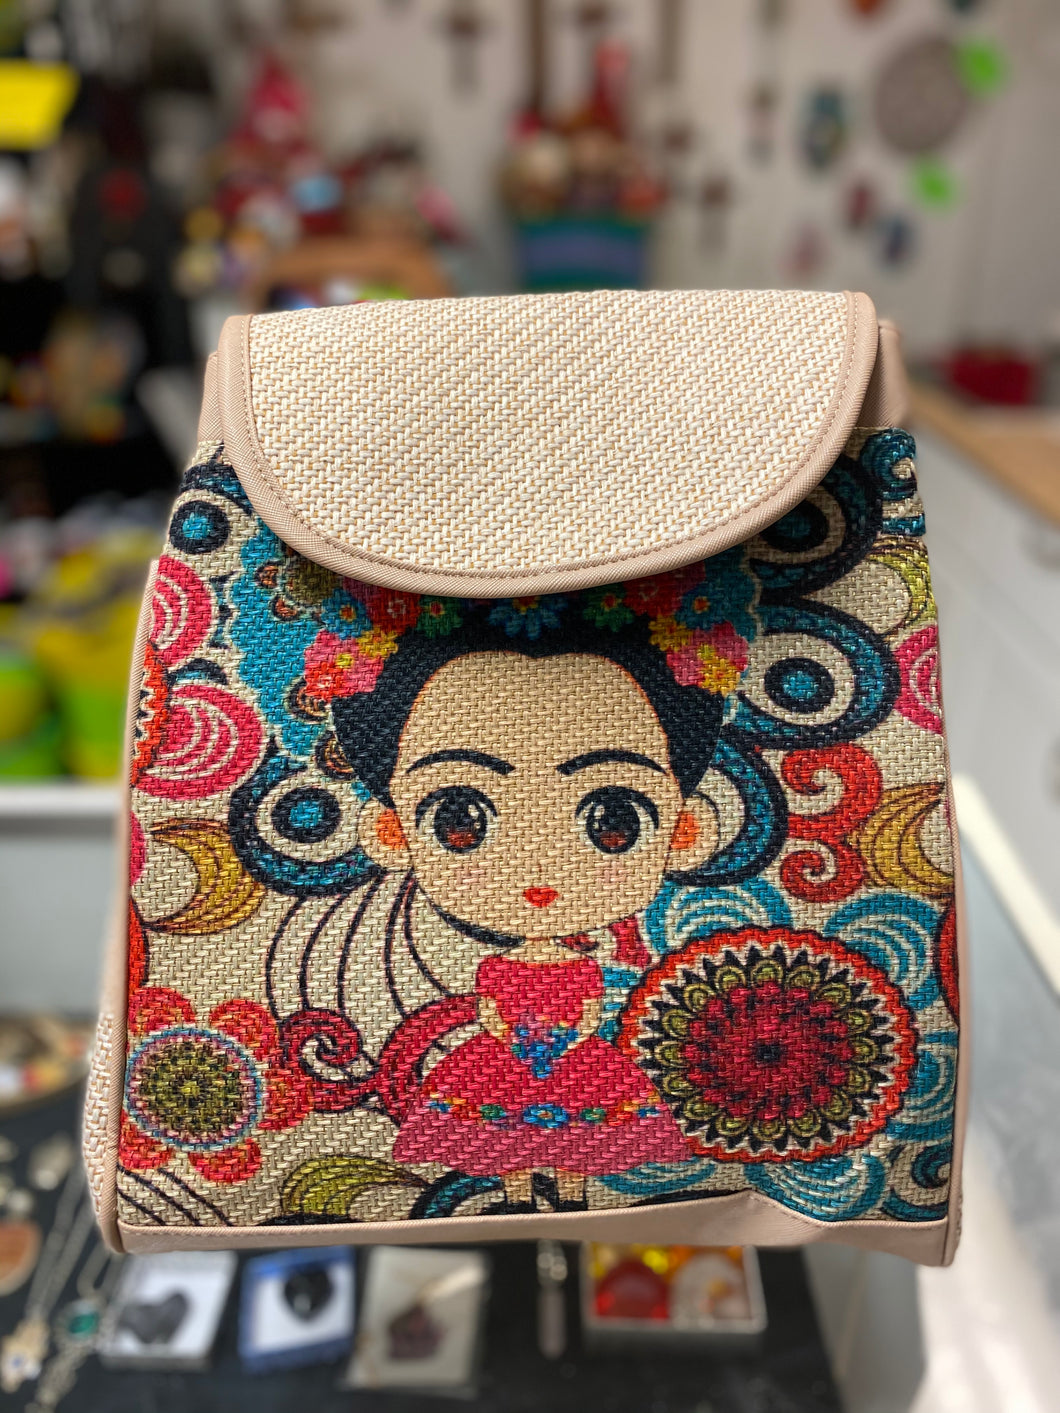 Bag Frida Kahlo backpack